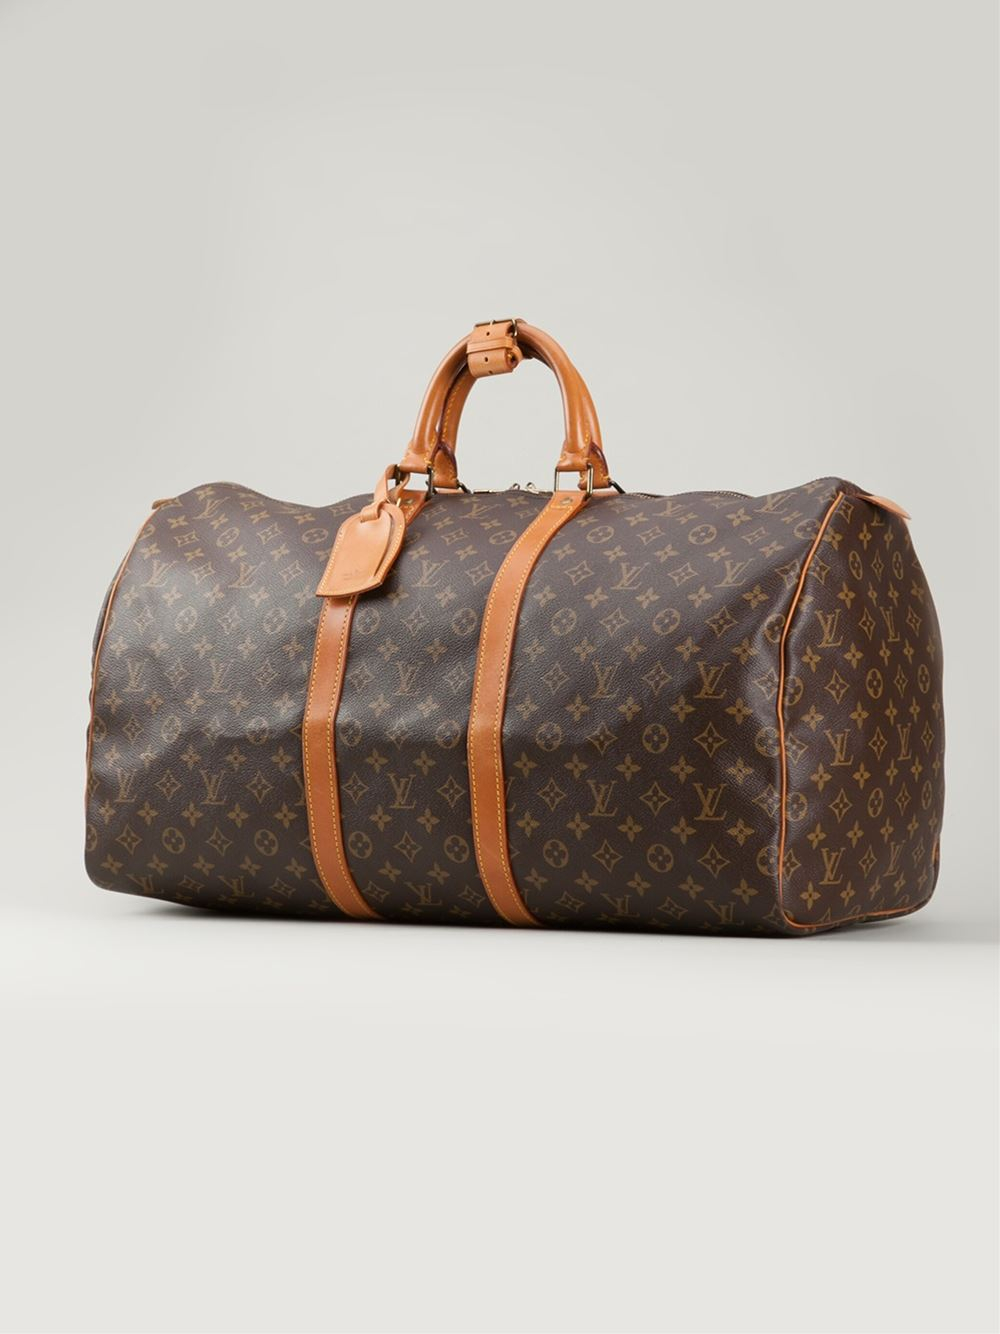 Louis vuitton 39 keepall 55 39 travel bag in brown lyst for Louis vuitton miroir bags